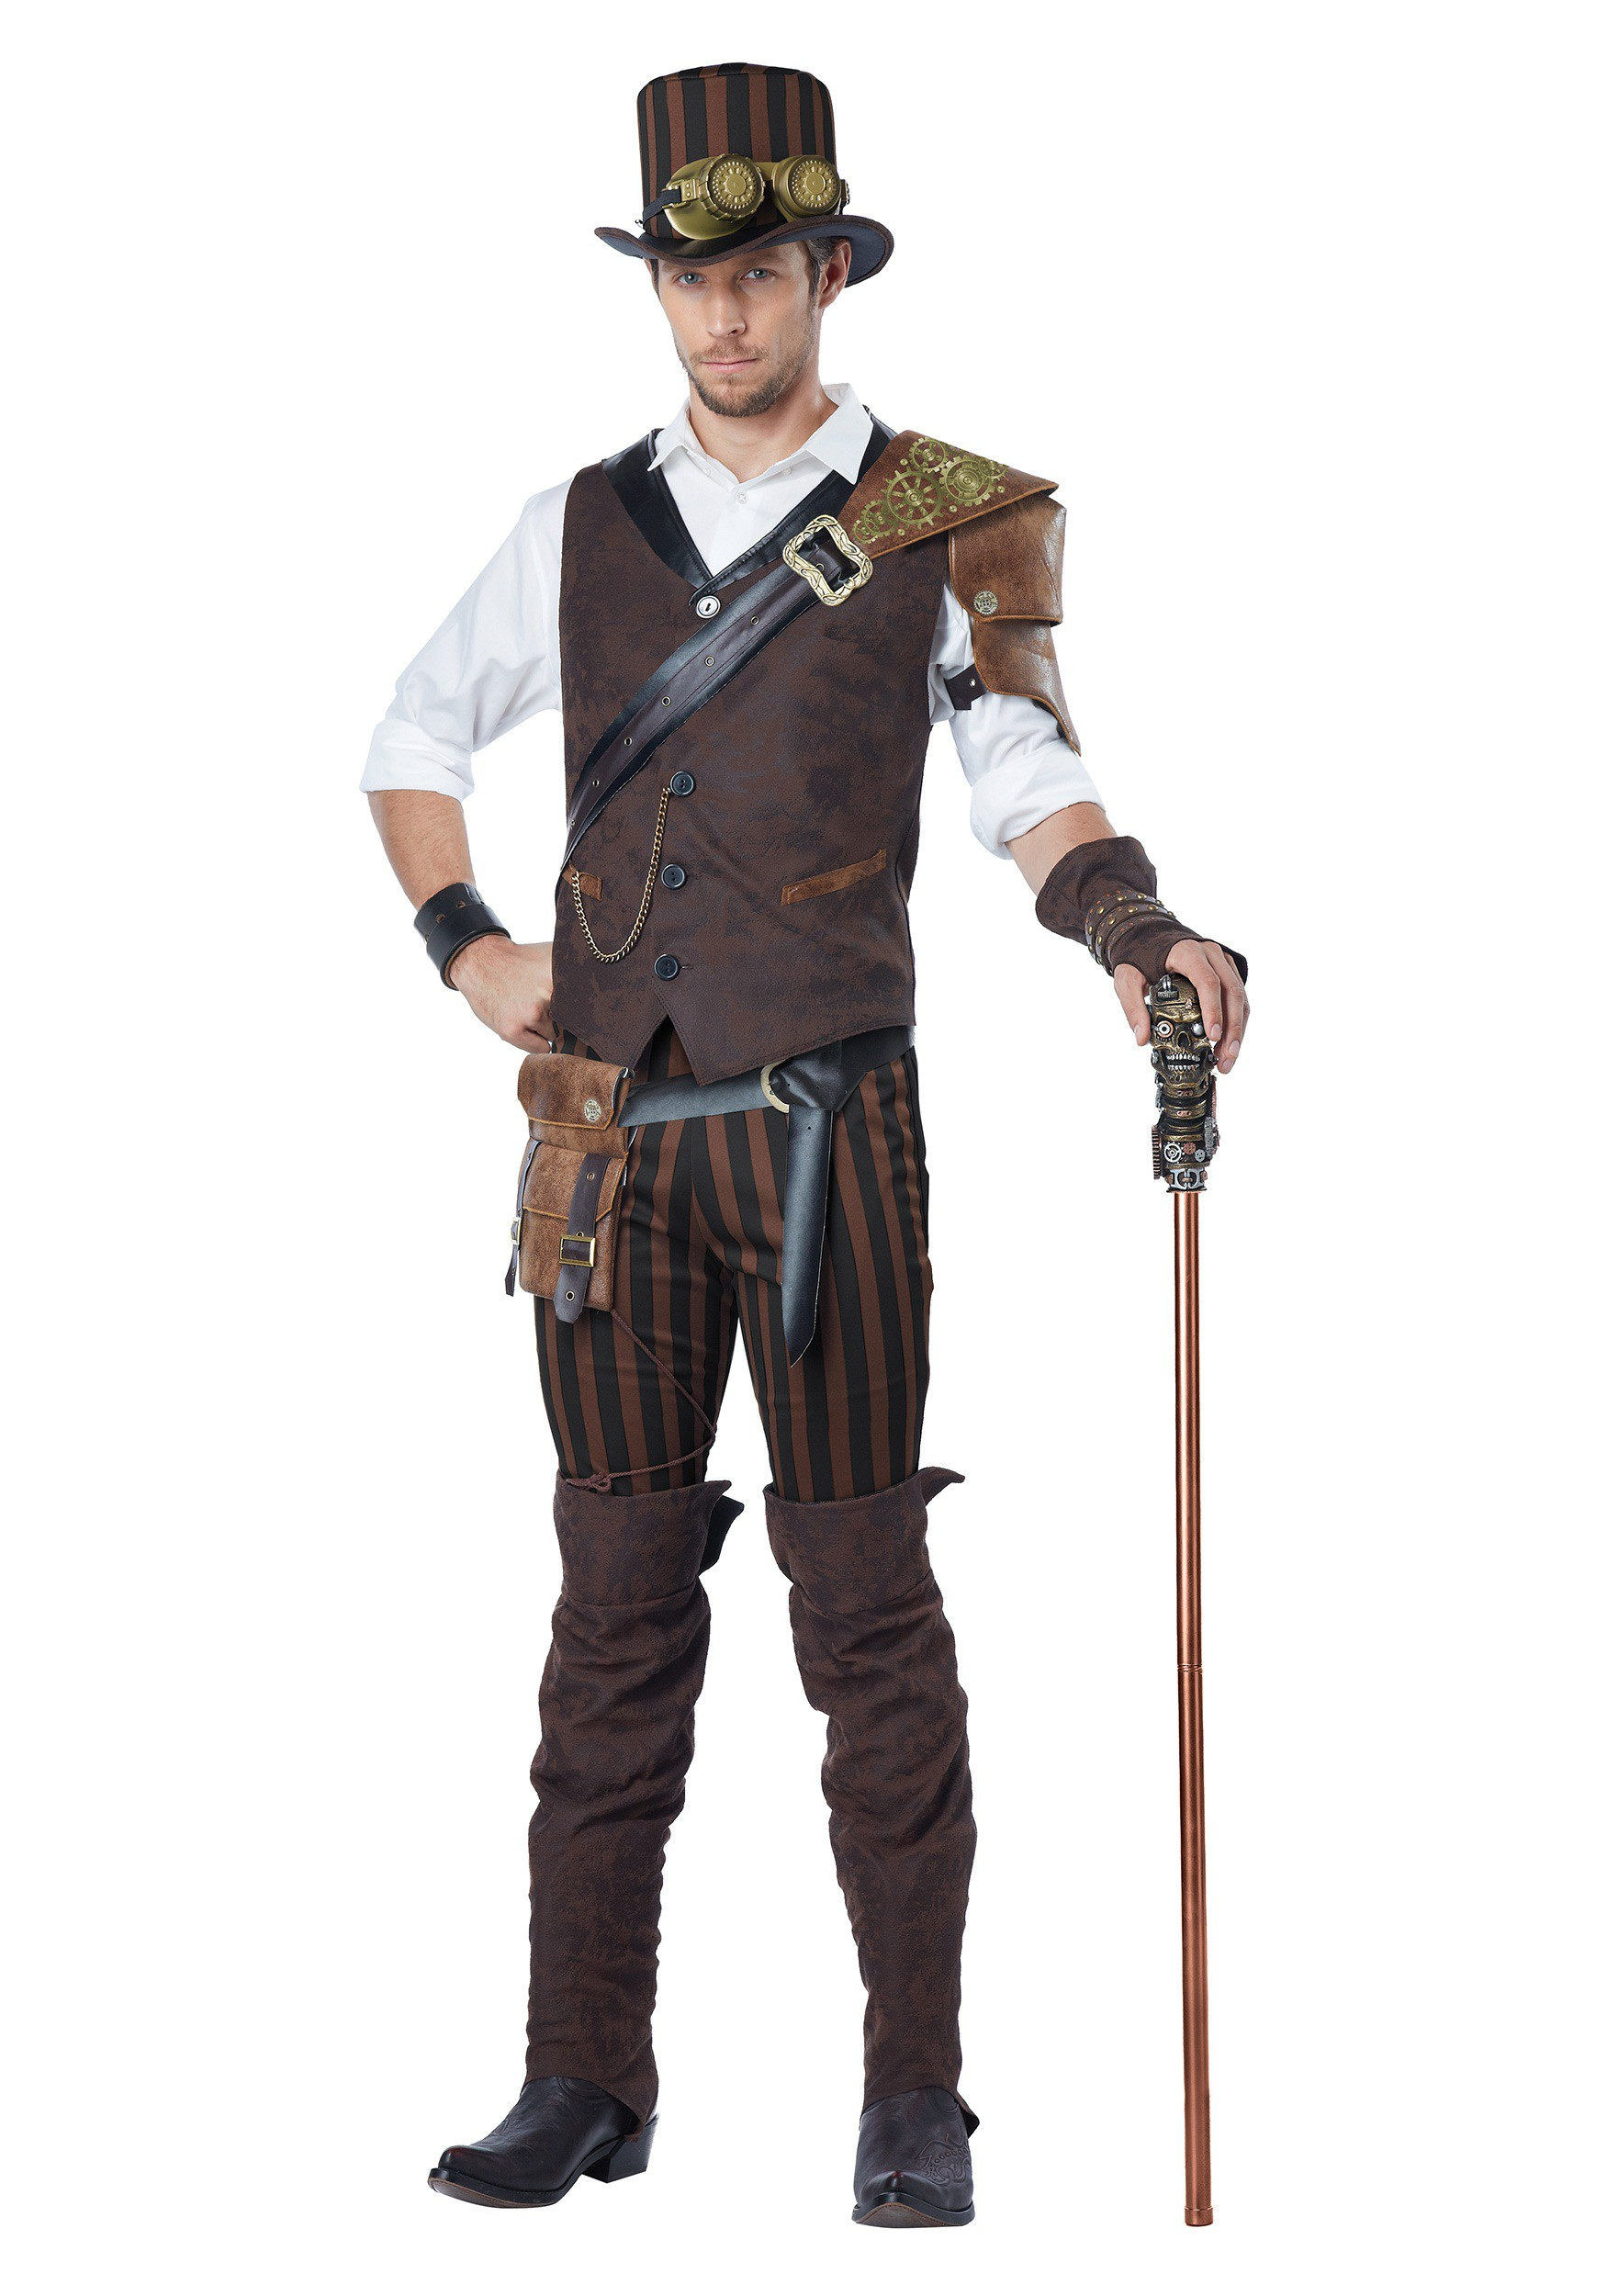 Steampunk Costumes - Victorian Steampunk Fashion Costumes